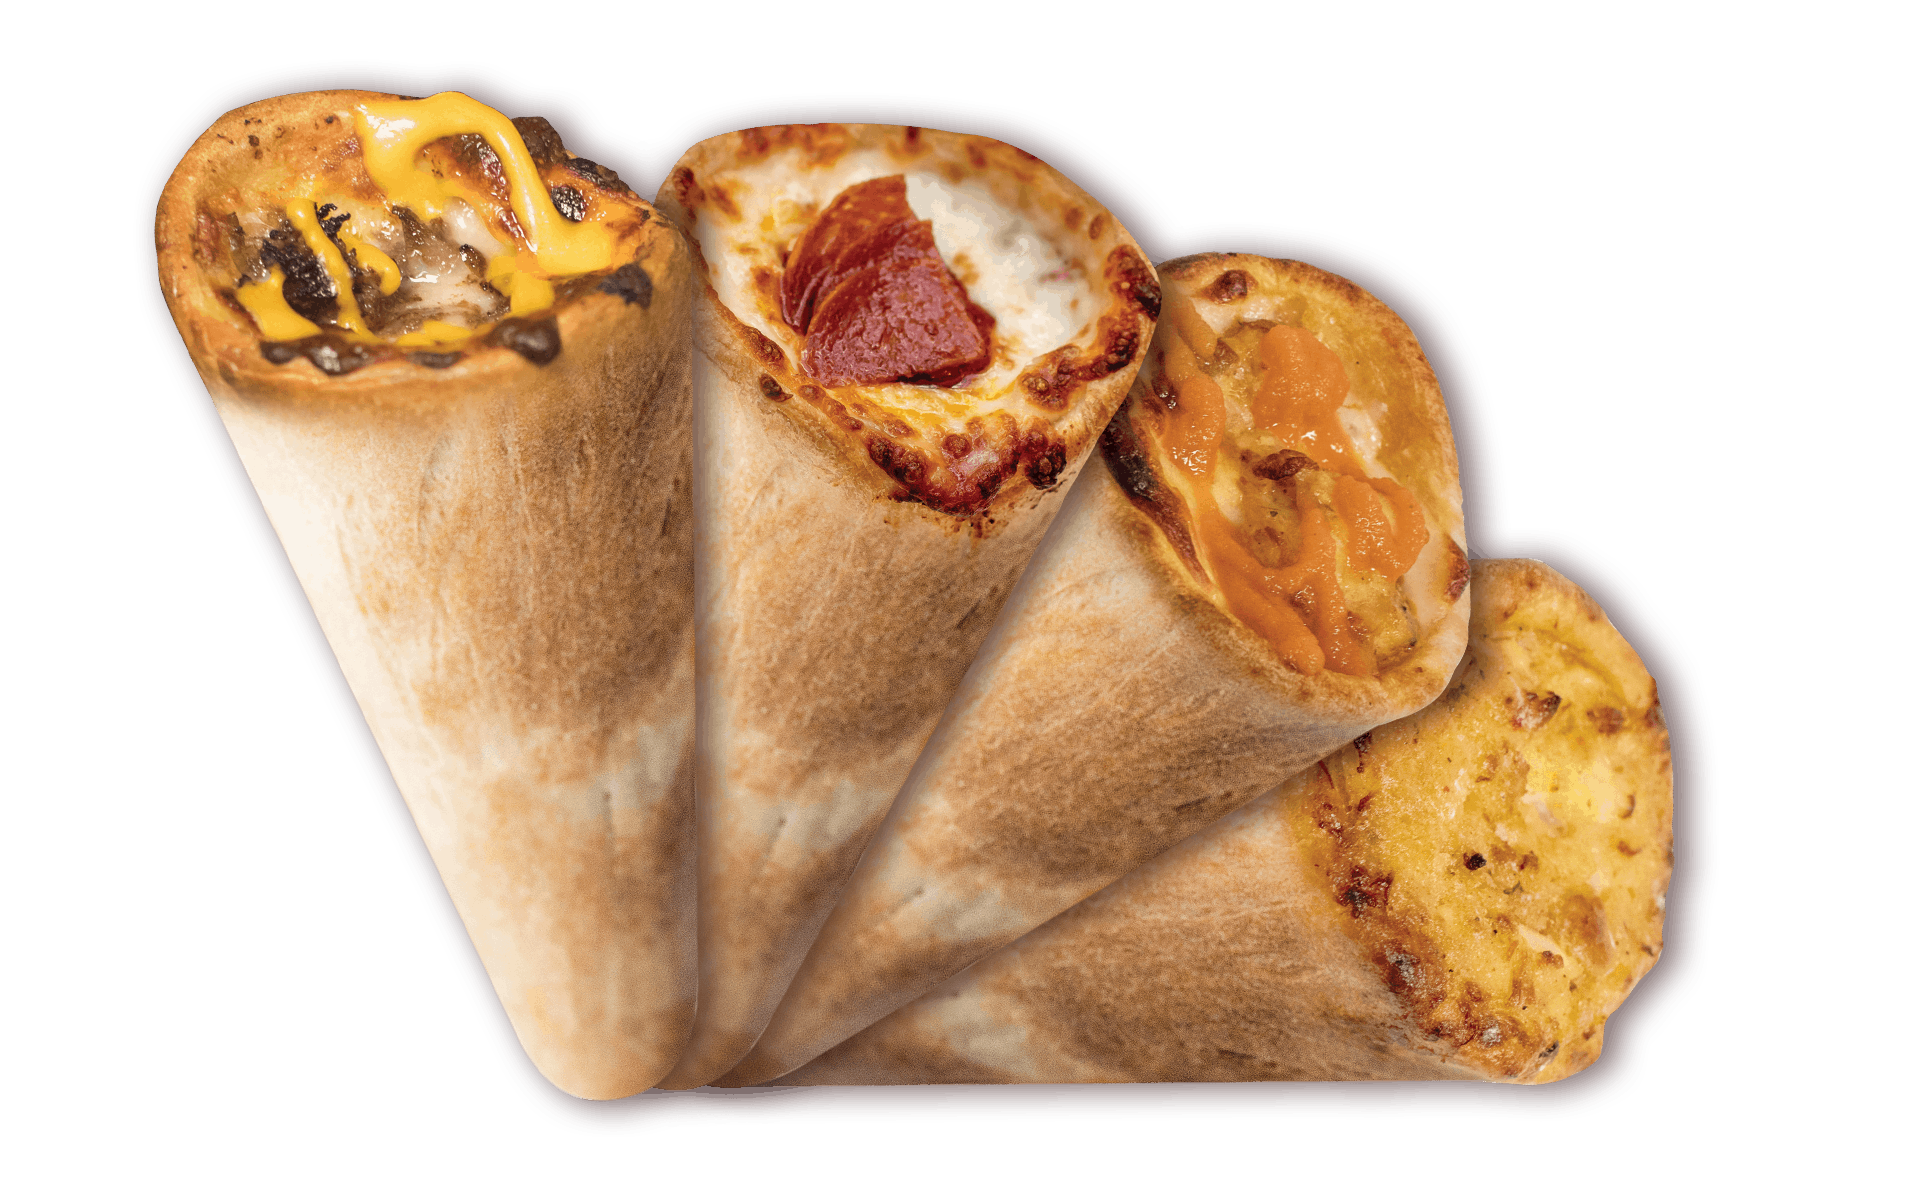 Pizza Cone Png - Chank's Pizza Cones   Food Made Portable